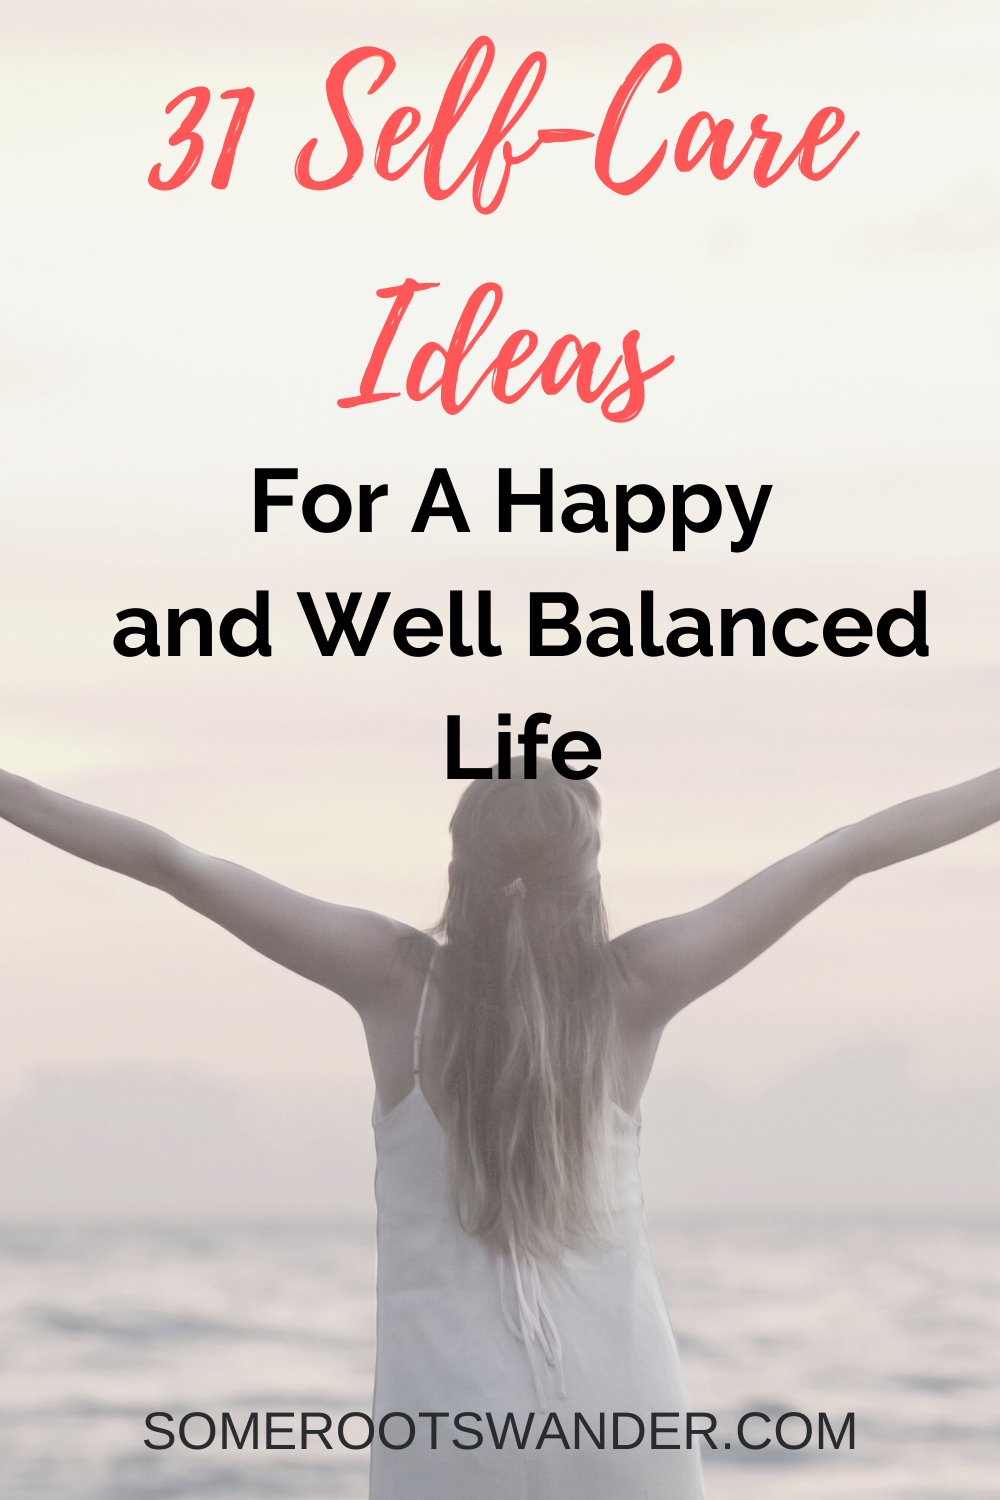 Self-Care Ideas For A Happy and Well Balanced Life